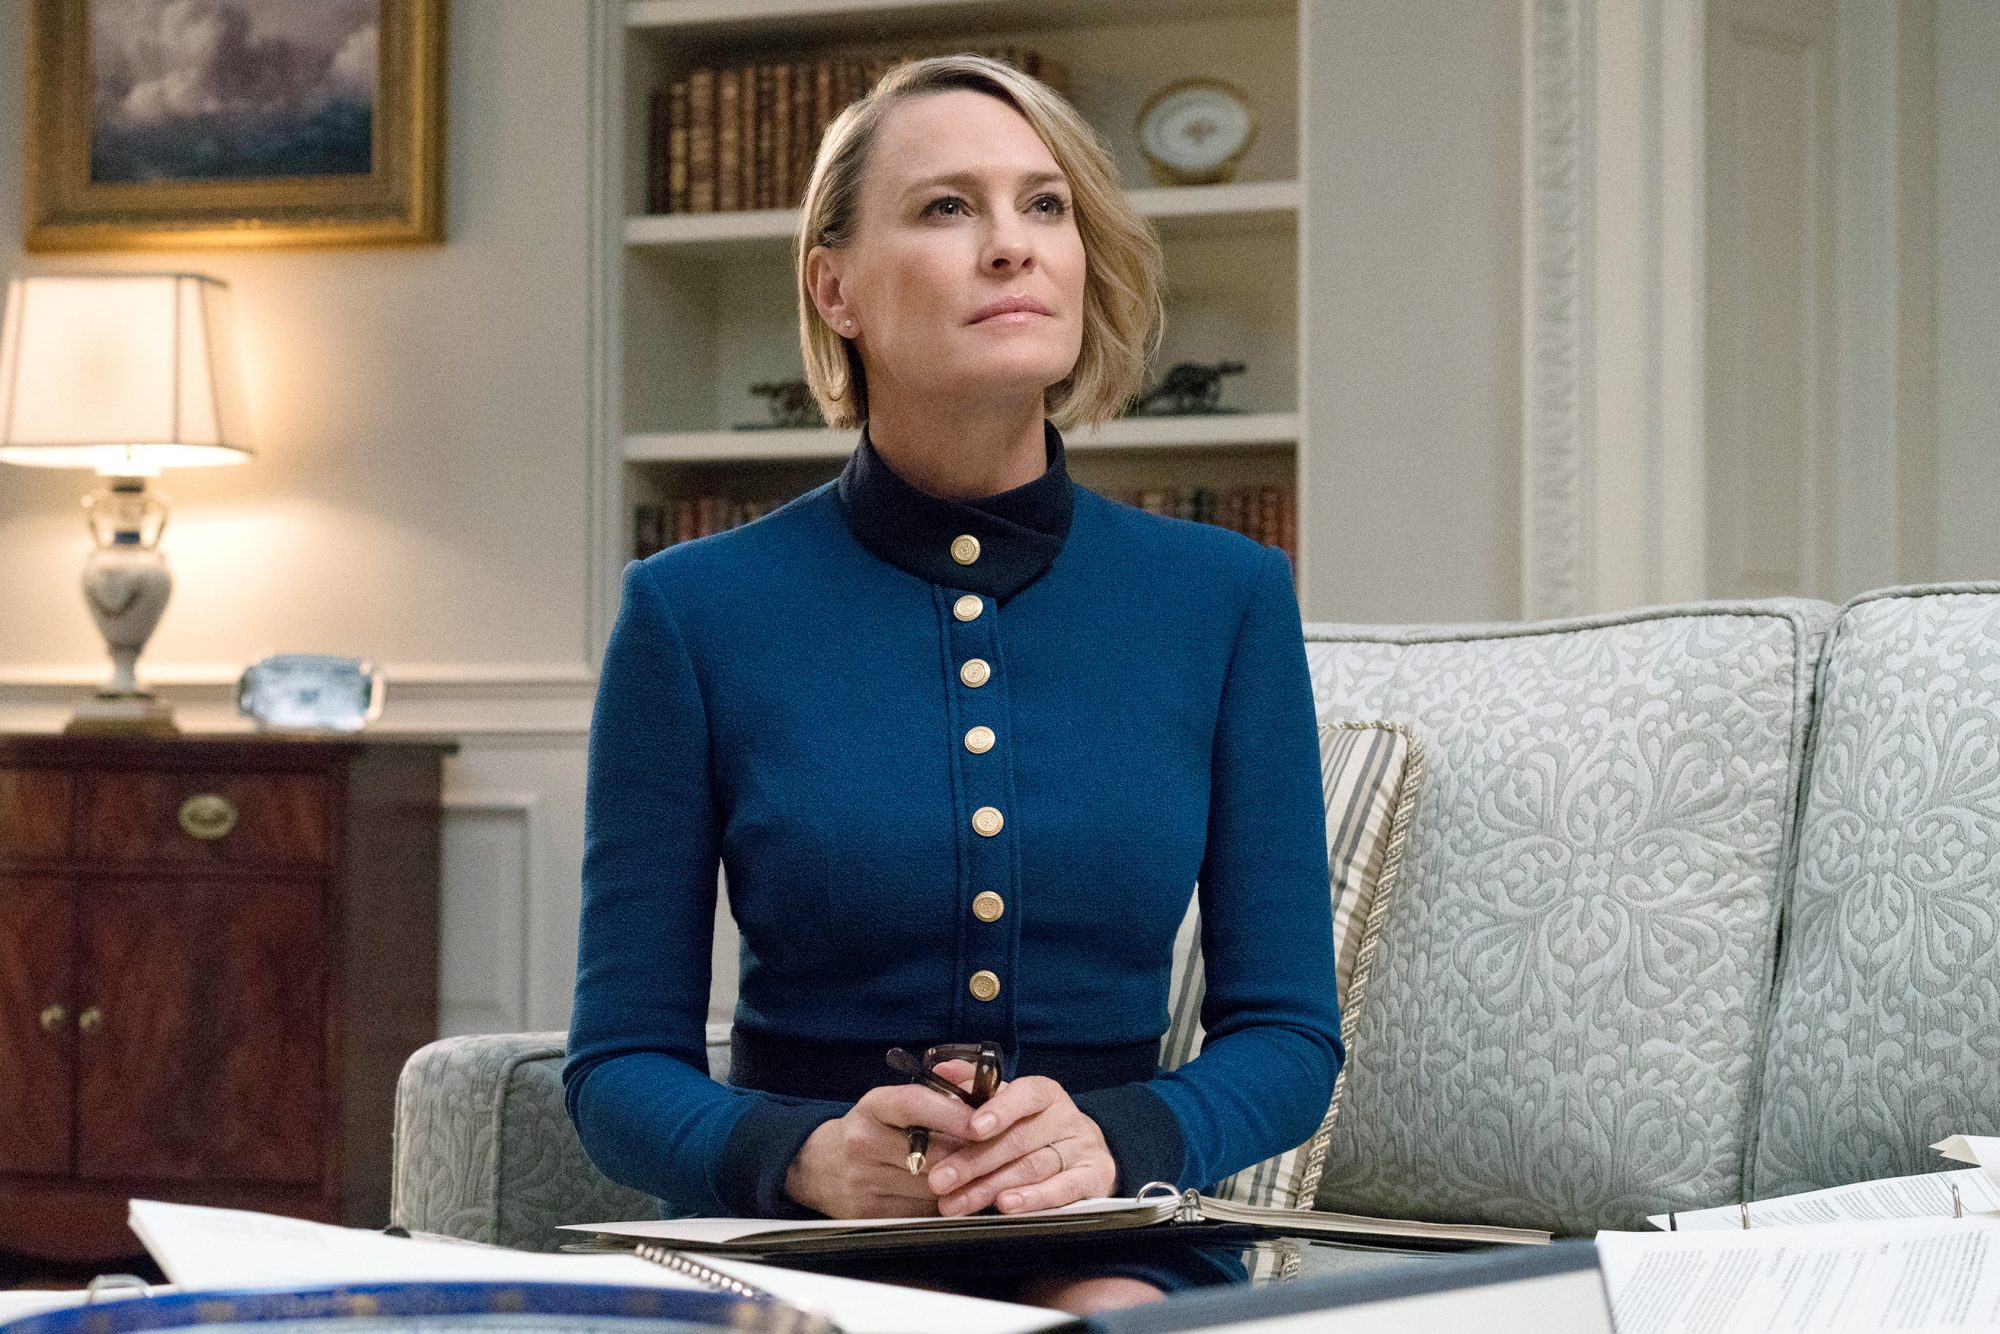 Claire Underwood Style - Lead